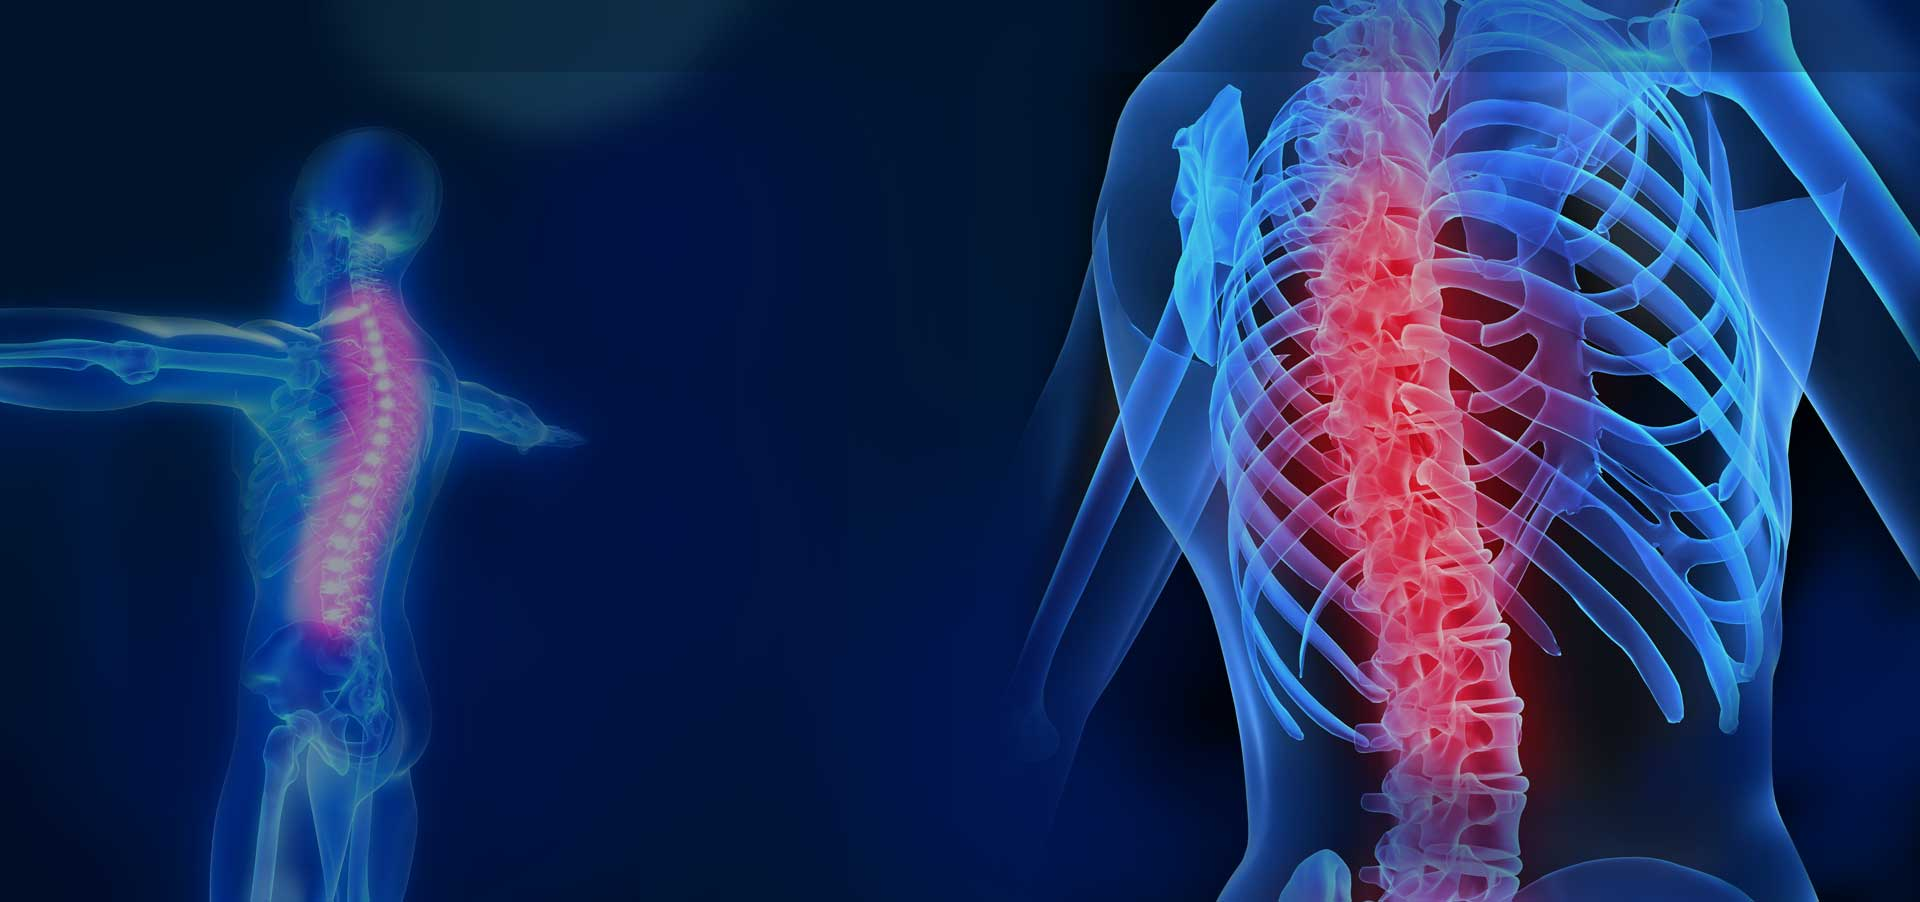 Spinal Cord Injury banner image